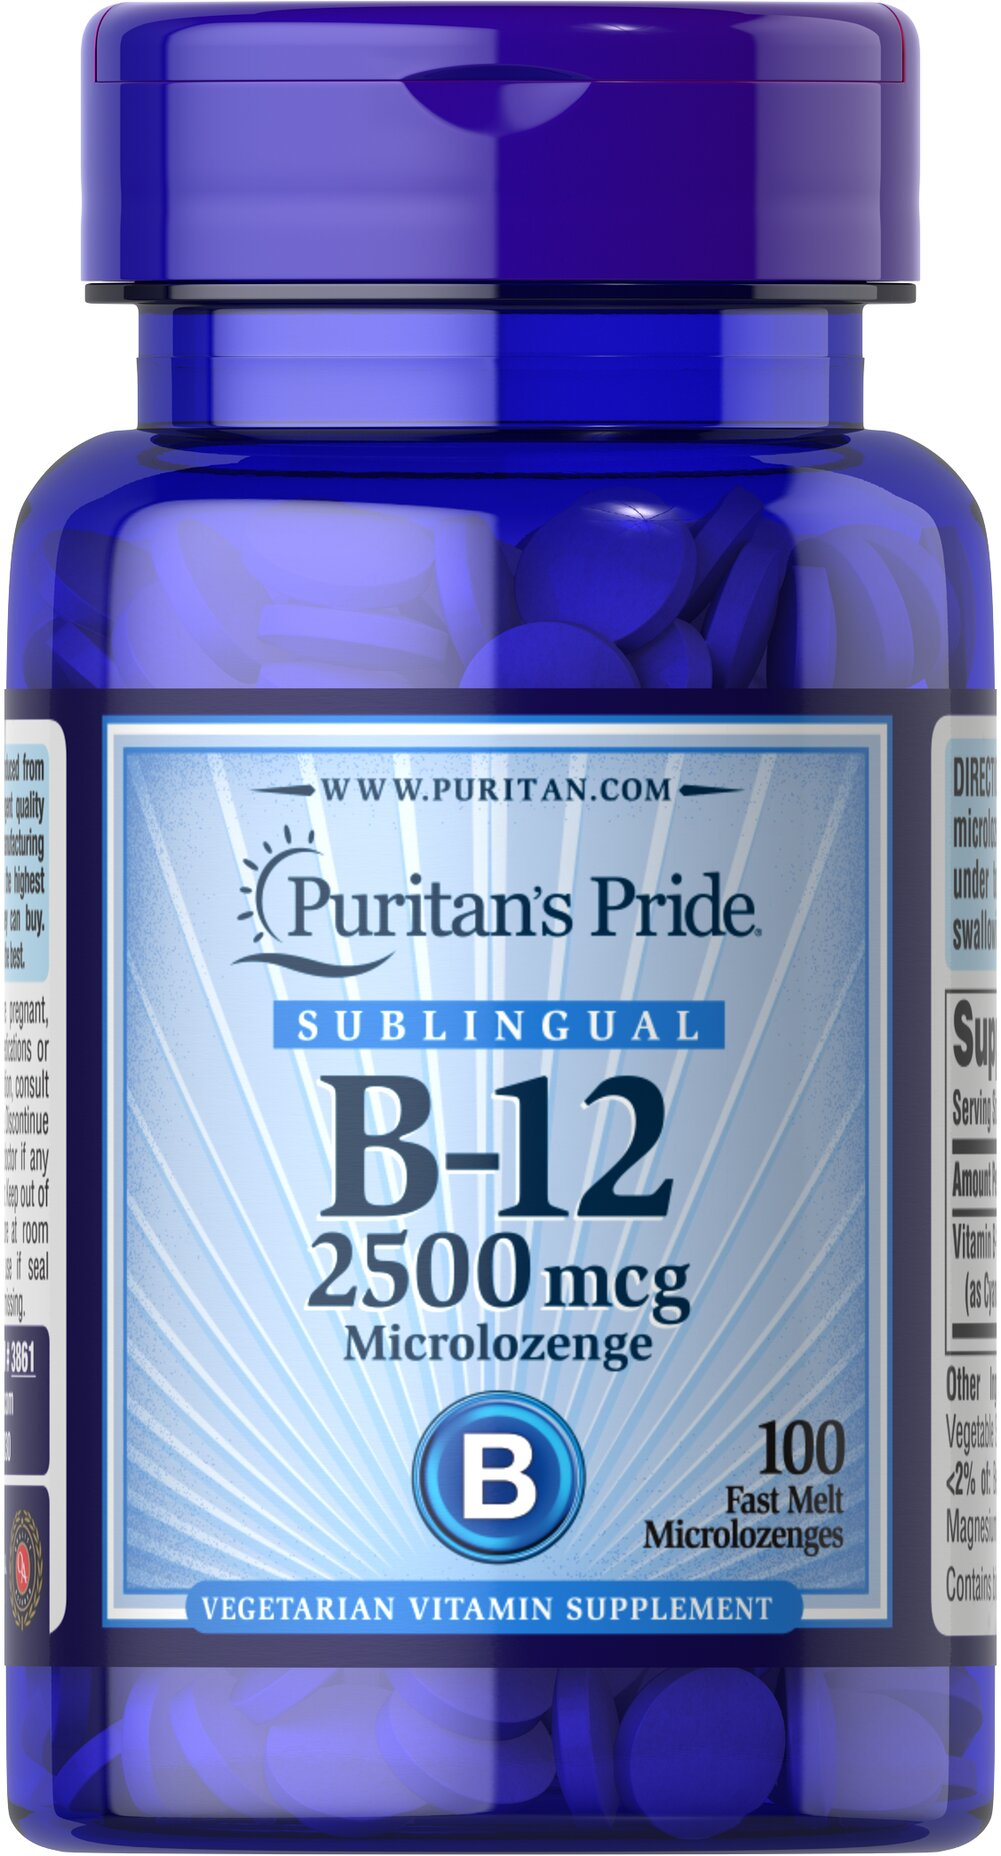 Vitamin B-12 2500 mcg Sublingual  100 Microlozenges 2500 mcg $19.99